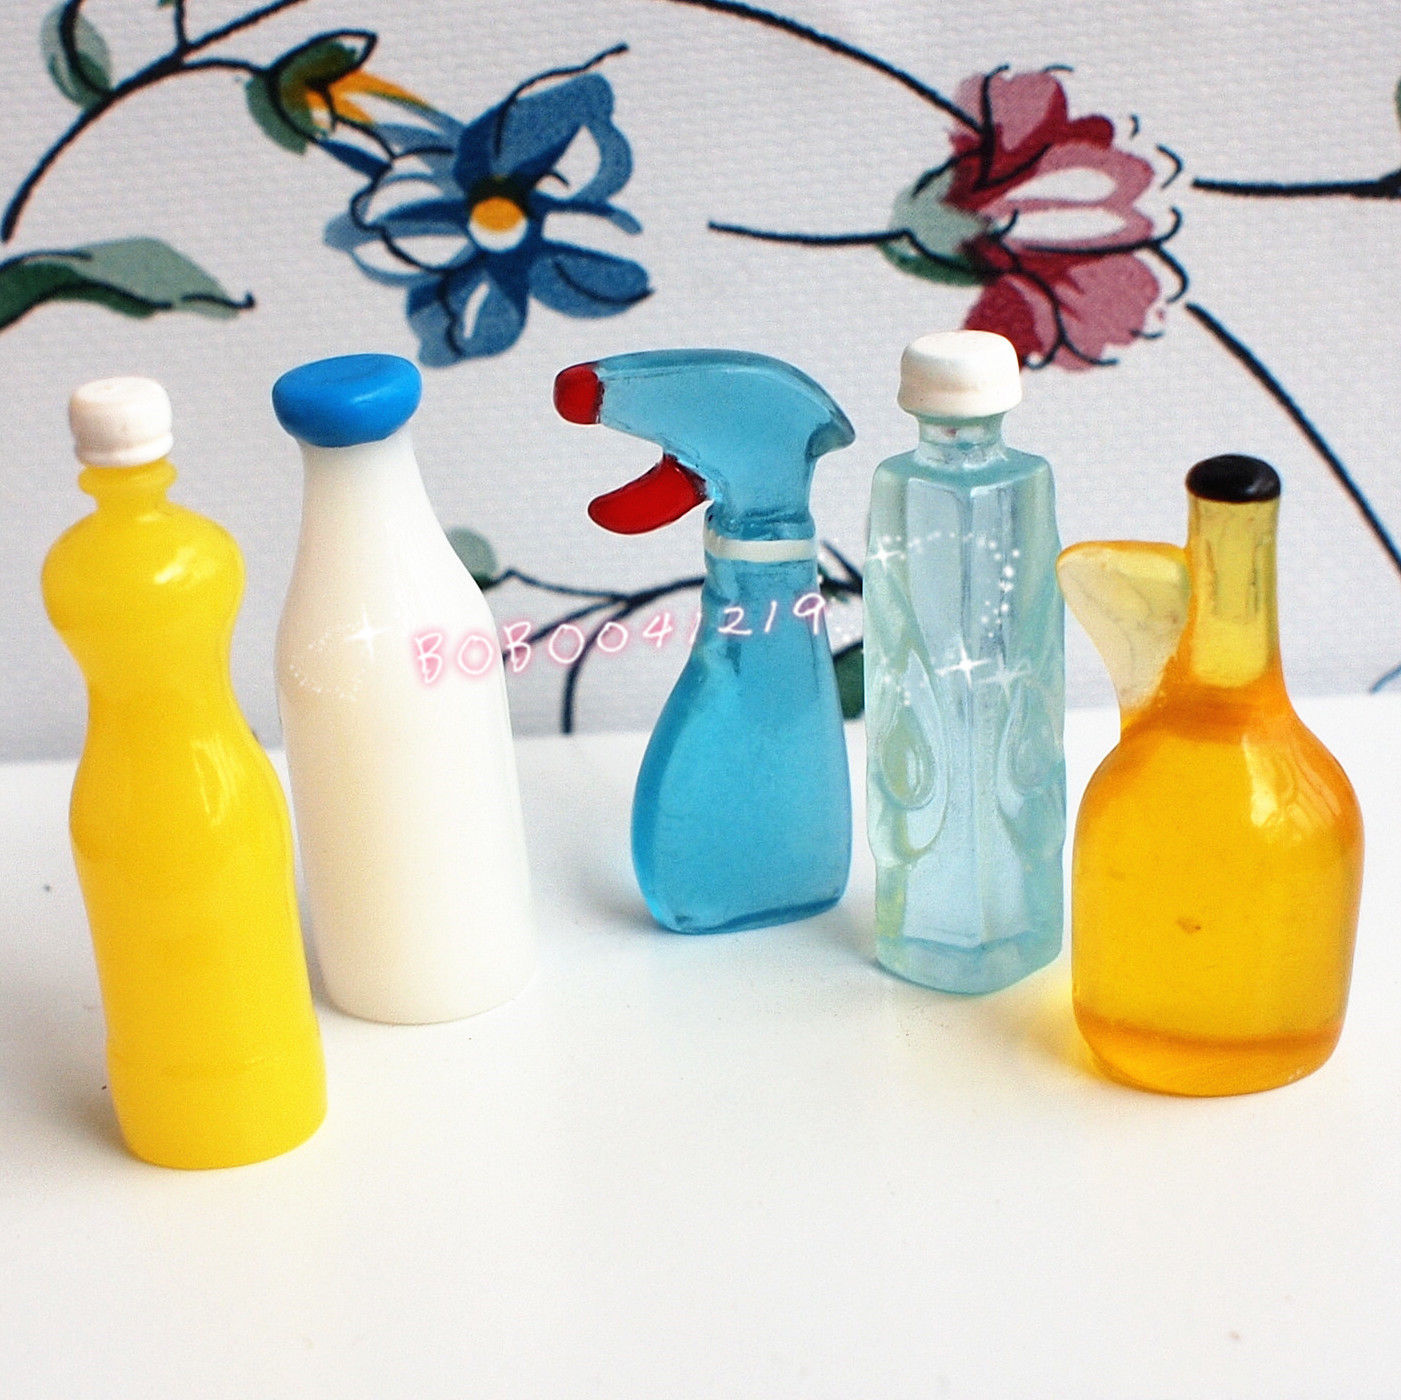 Dollhouse Miniature 1:12 Toy 5 Pieces Plastic Kitchen Bottles Height ...